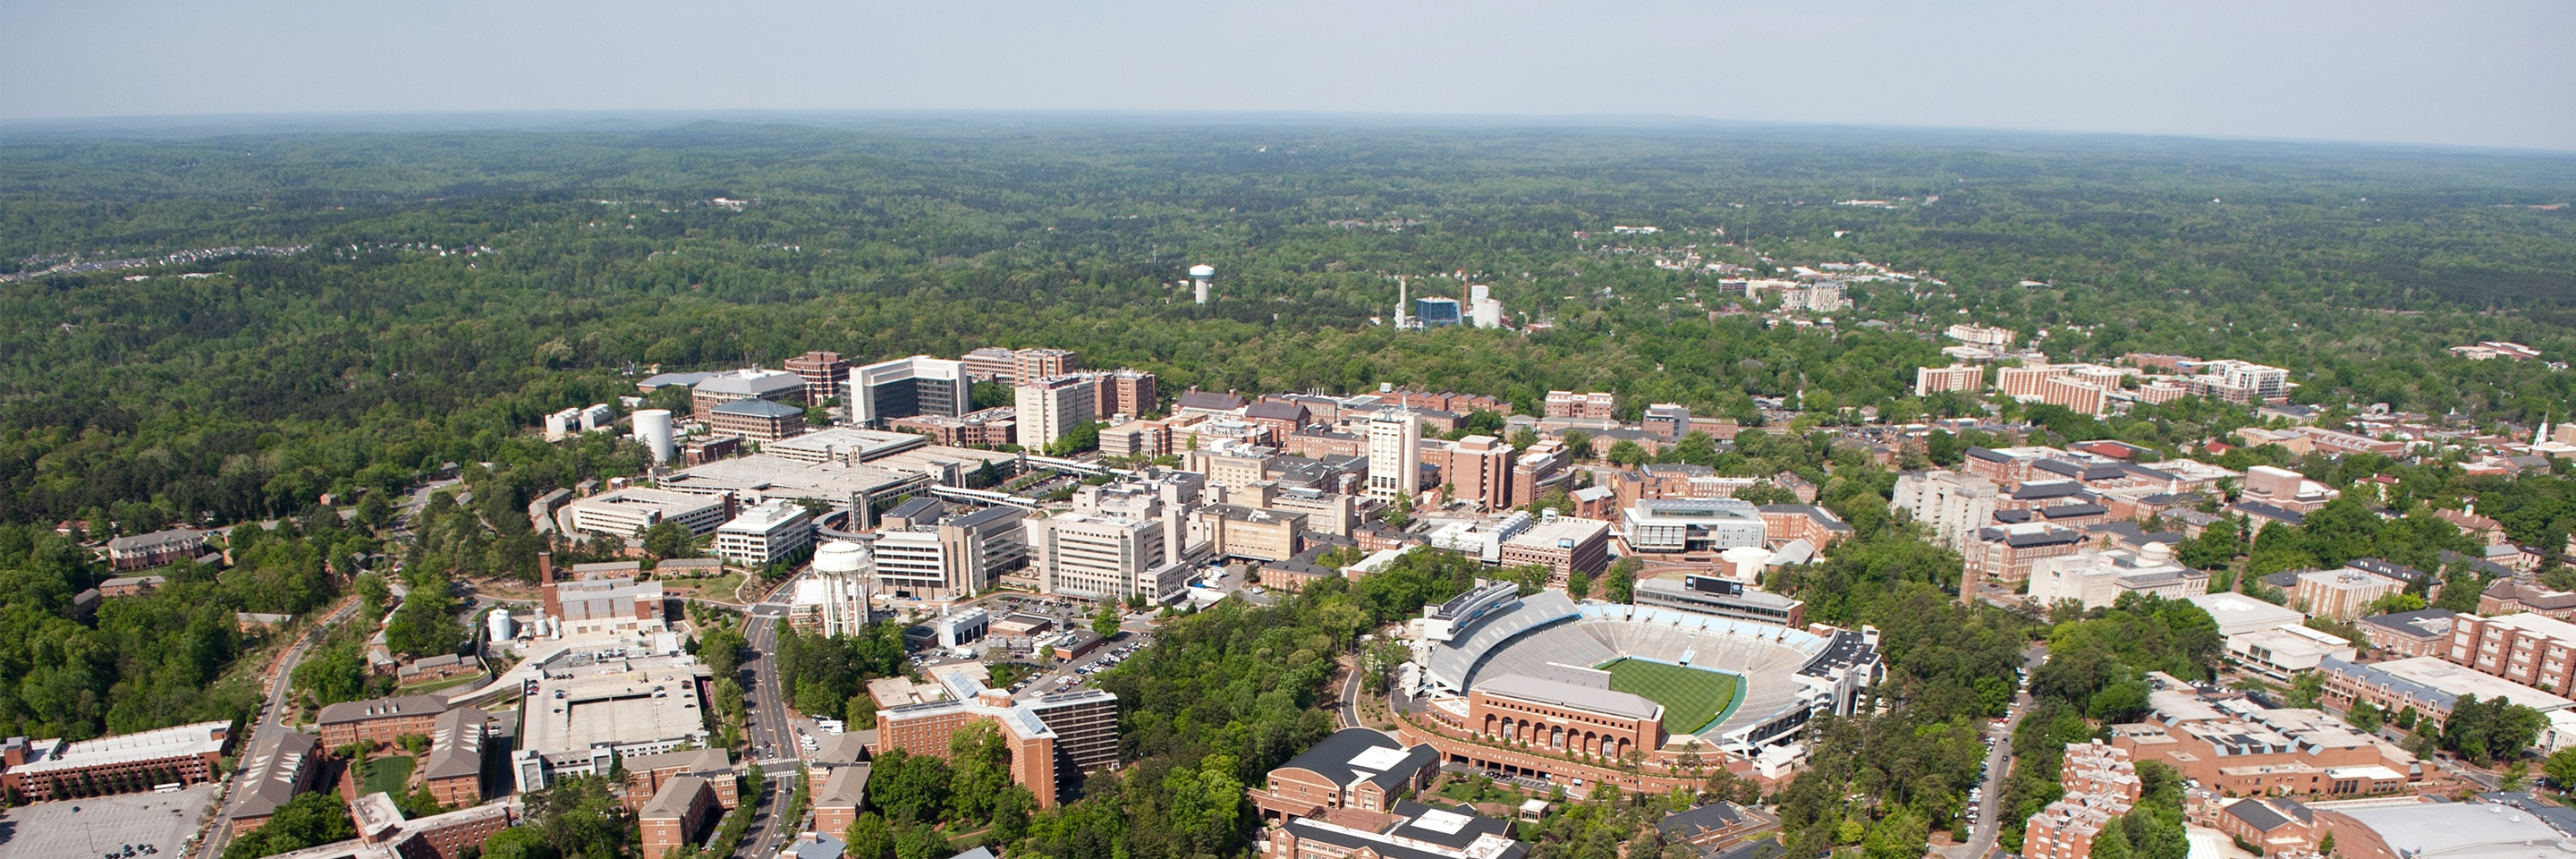 Hotels in Chapel Hill